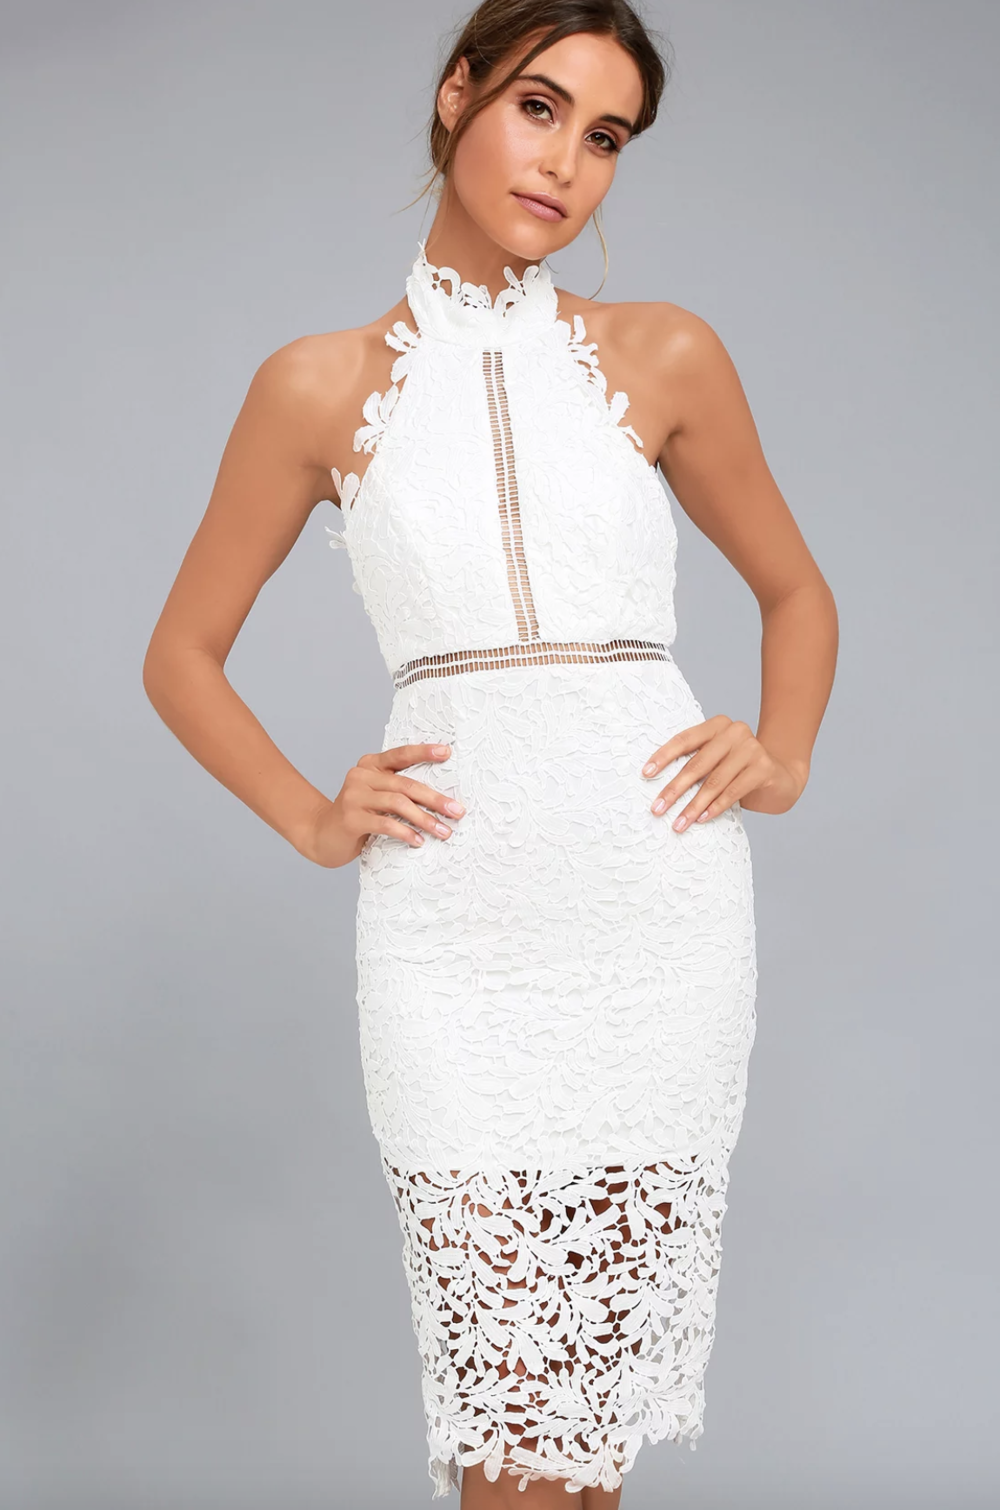 DIVINE DESTINY WHITE LACE MIDI DRESS | Cocktail dress, White dress, lace dress, nude and lace, bachelorette party dress, bridal shower dress, rehearsal dinner dress | www.thoughtfully-thrifted.com